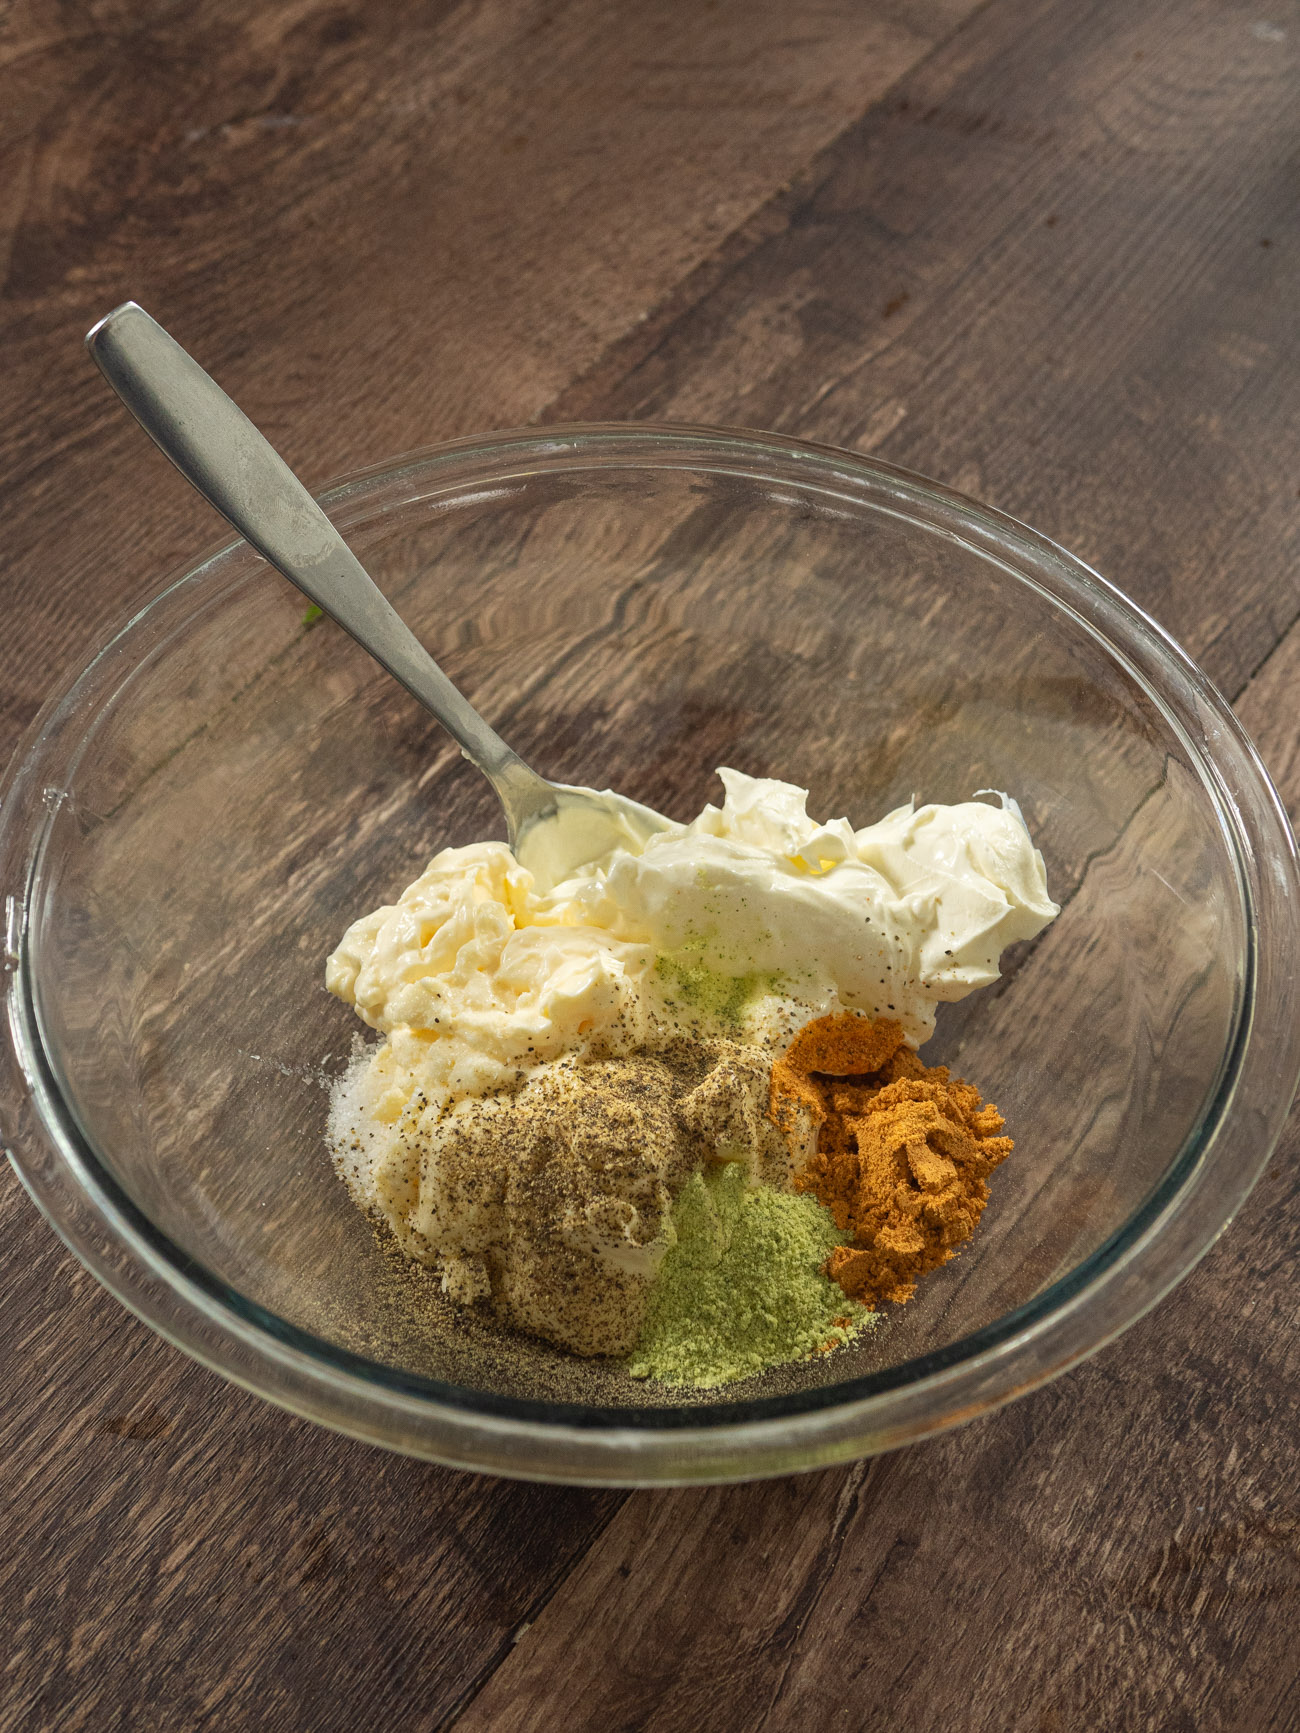 Mix together mayo and sour cream. Stir in salt, pepper, taco seasoning, and ranch seasoning. Add pasta to this and toss until all pasta is coated.